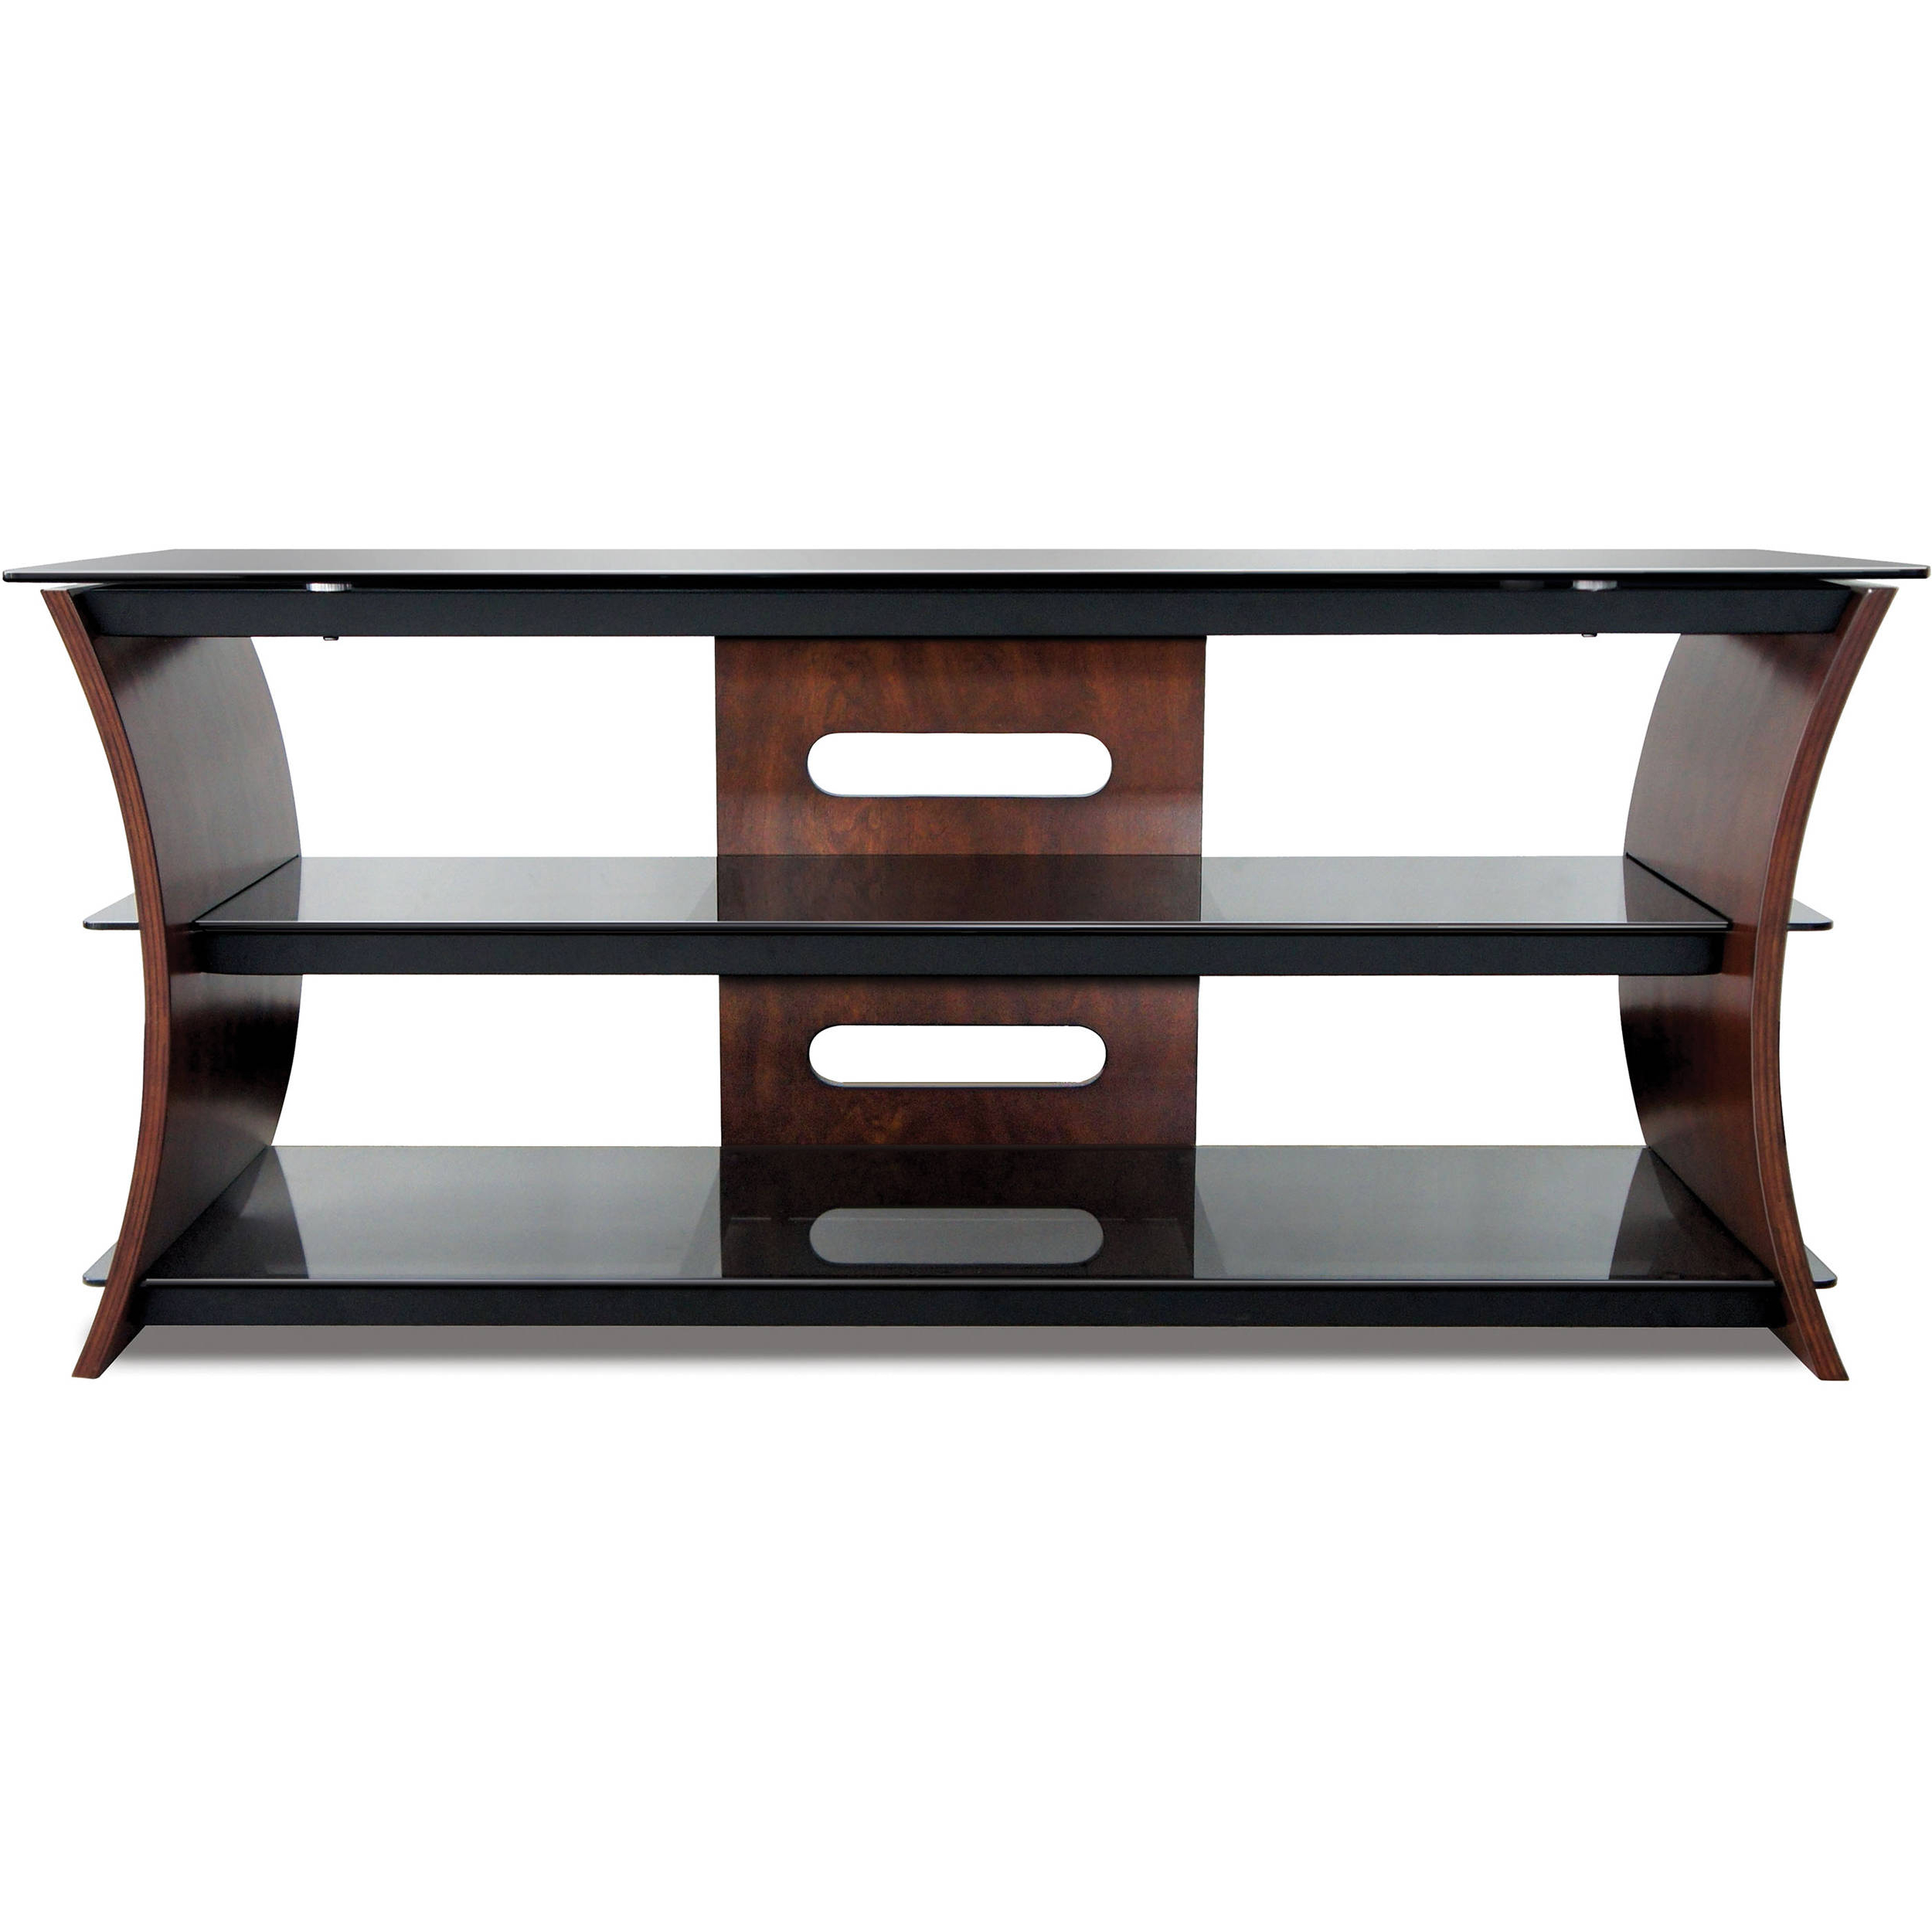 Widely Used Wood Tv Stands Inside Bell'o Cw356 Curved Wood Tv Stand Cw356 B&h Photo Video (View 10 of 20)